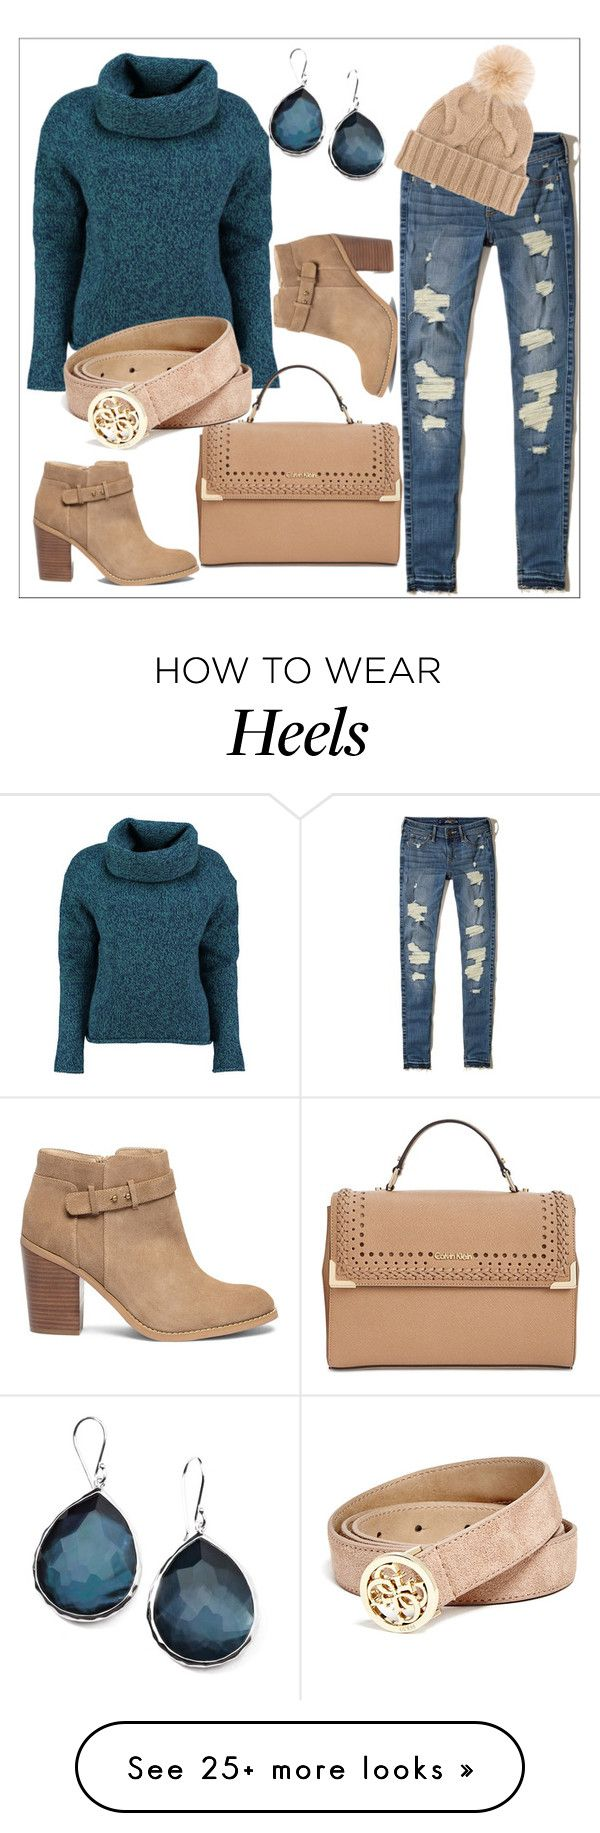 """""""Untitled #339"""" by chanlee-luv on Polyvore featuring Lowie, Hollister Co., Ippolita, Sole Society, Calvin Klein, Loro Piana and GUESS"""